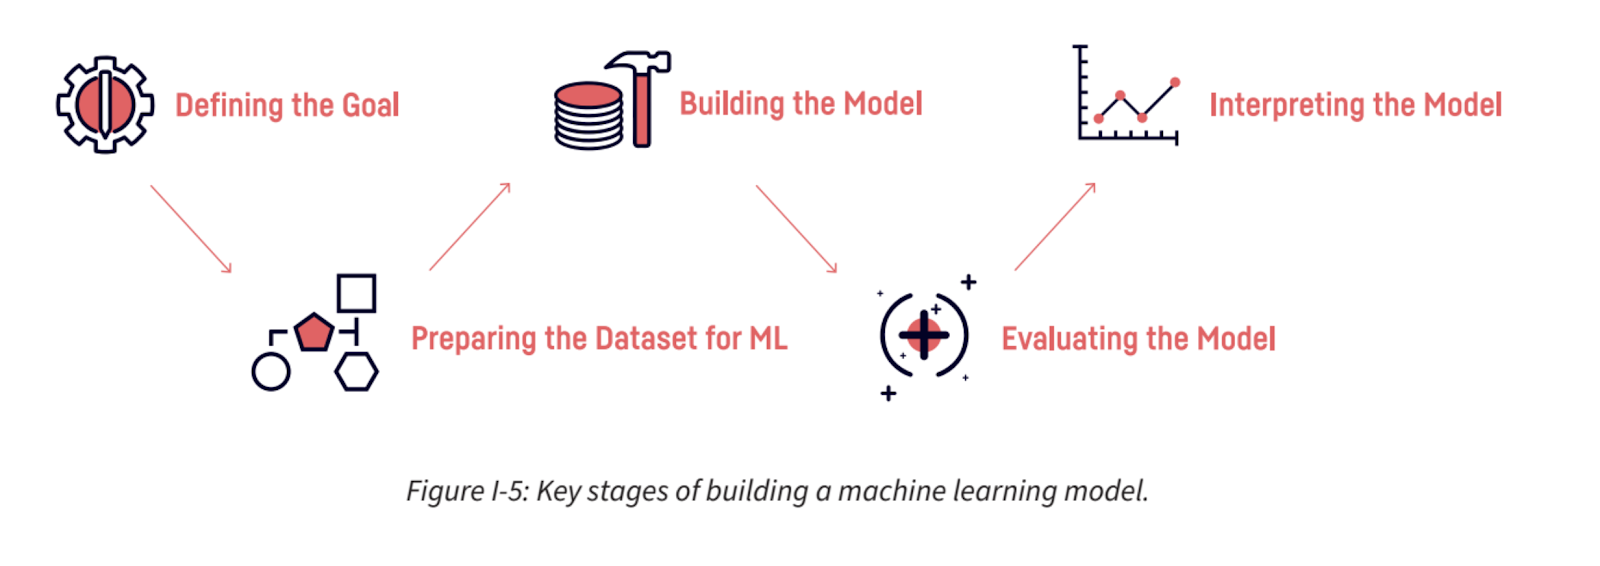 five key stage of building a machine learning model